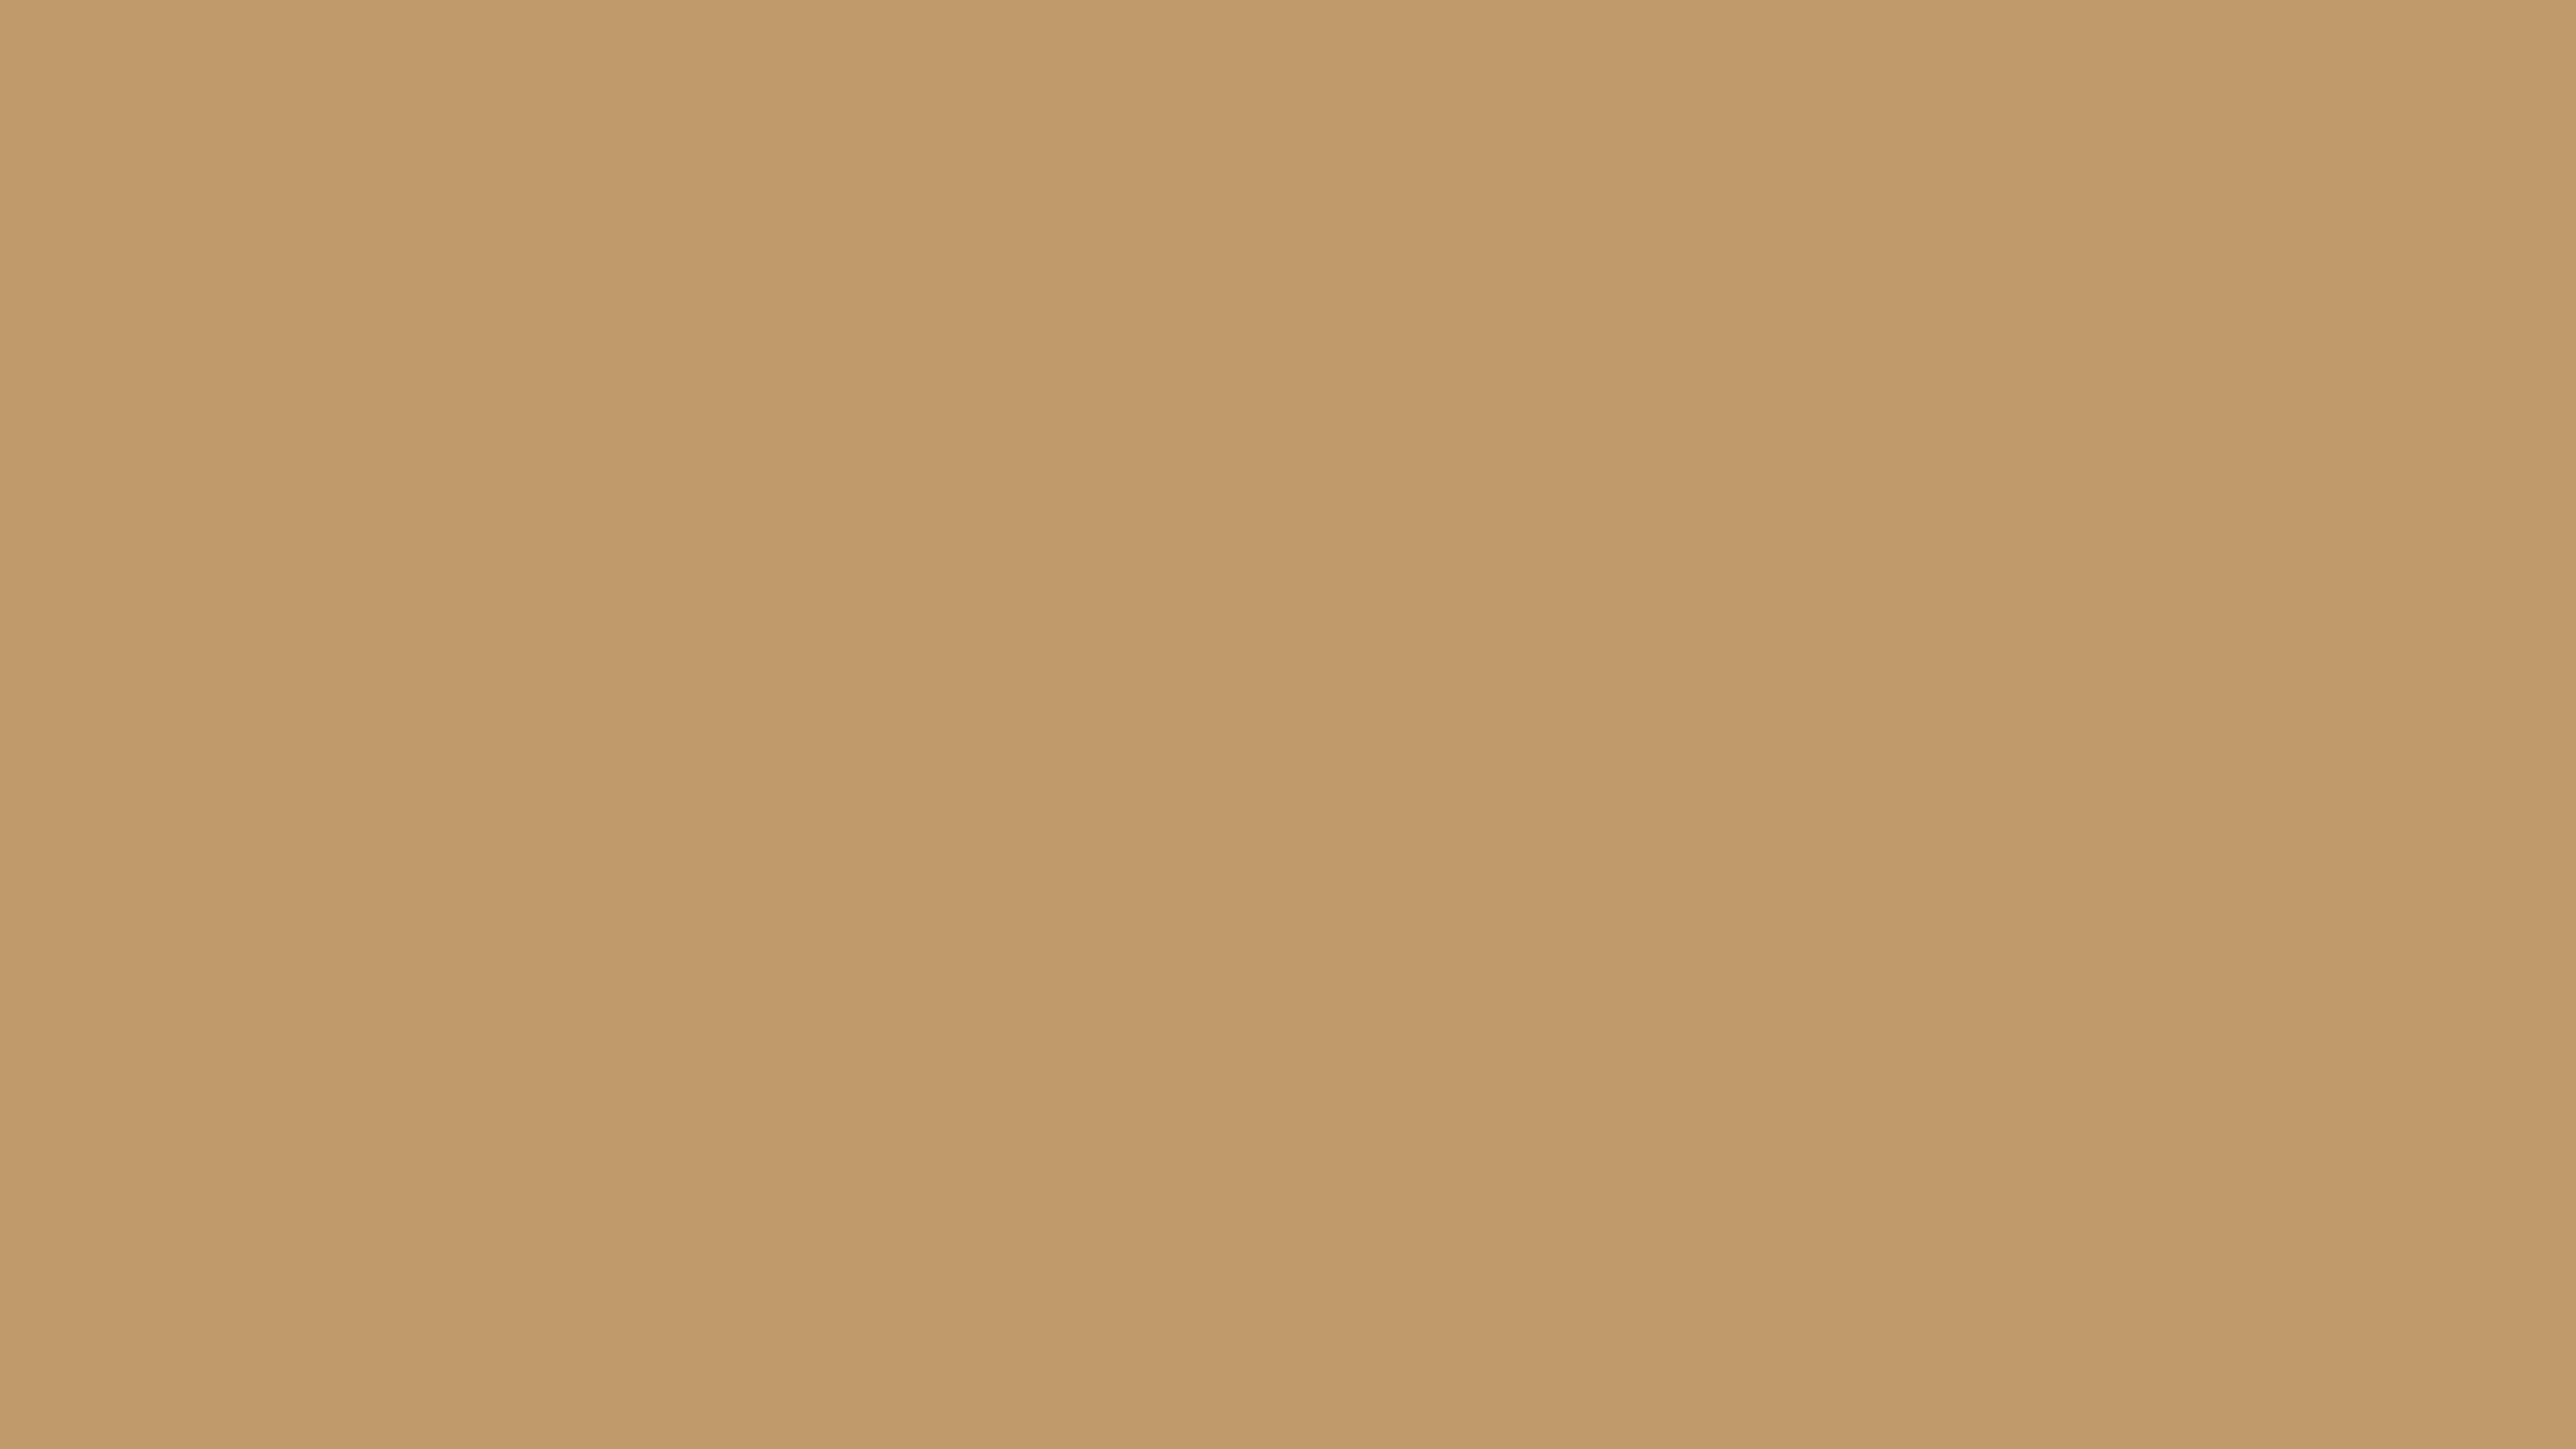 3840x2160 Desert Solid Color Background